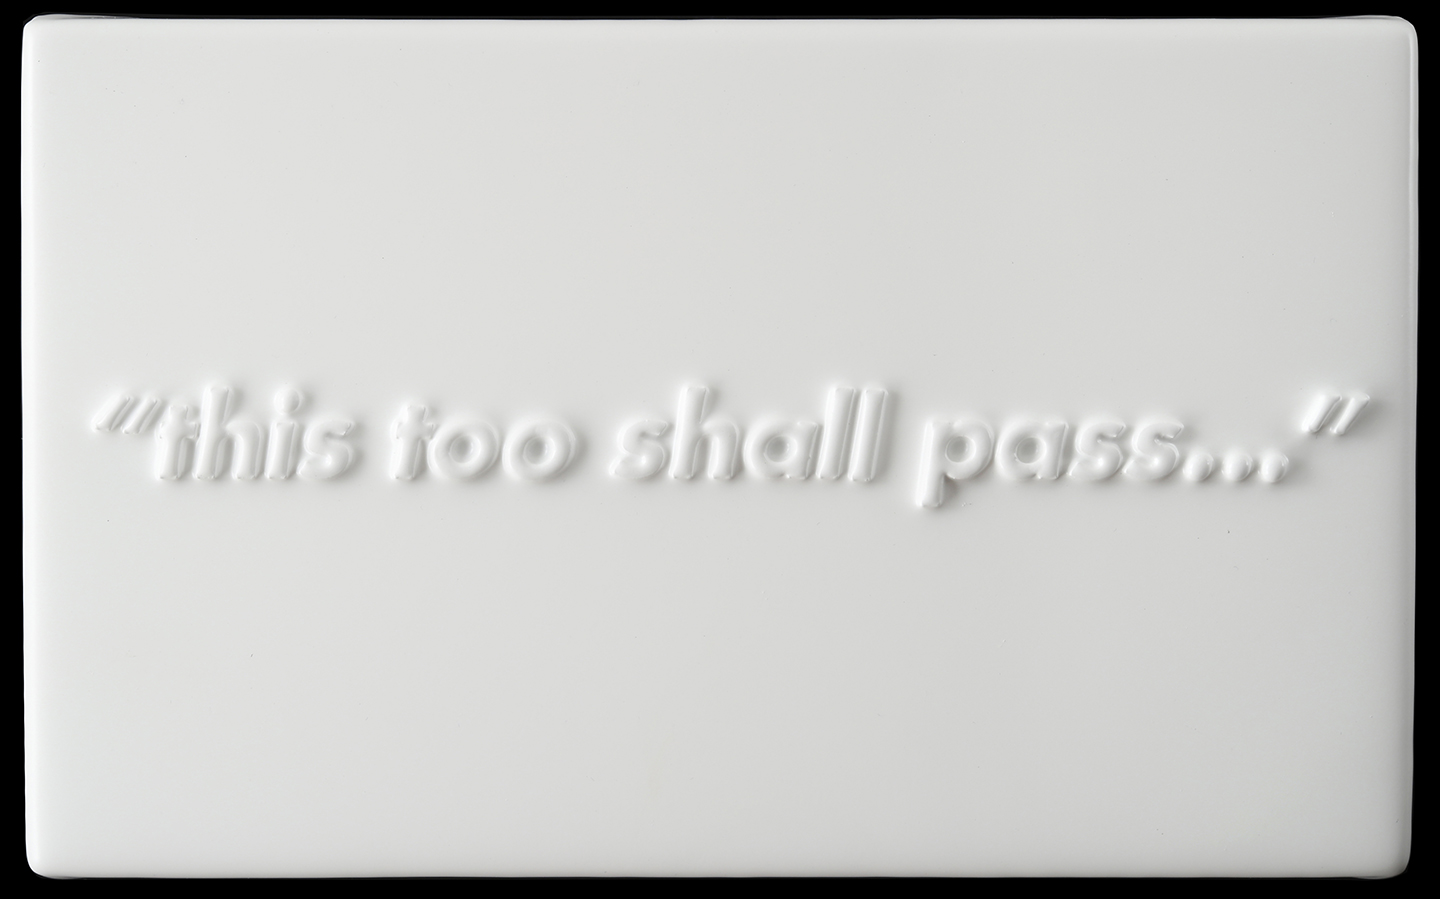 Rapp This Too Shall Pass